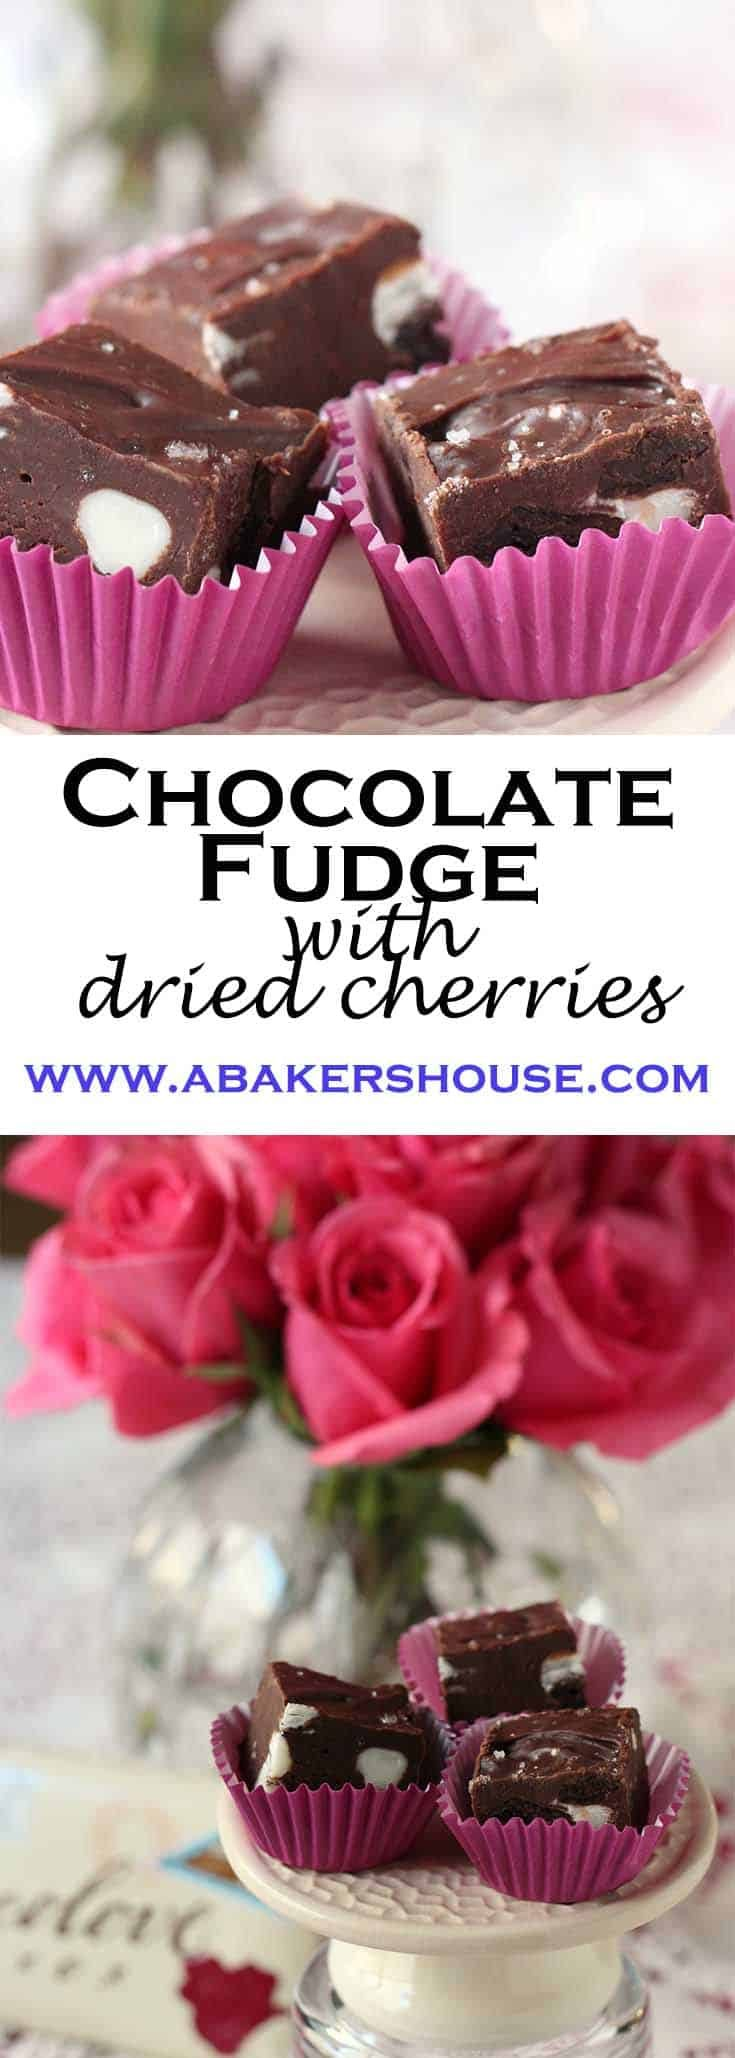 Easy recipe for chocolate fudge with dried cherries makes a love gift #Christmas #valentines #fudge #easyfudgerecipe #abakershouse